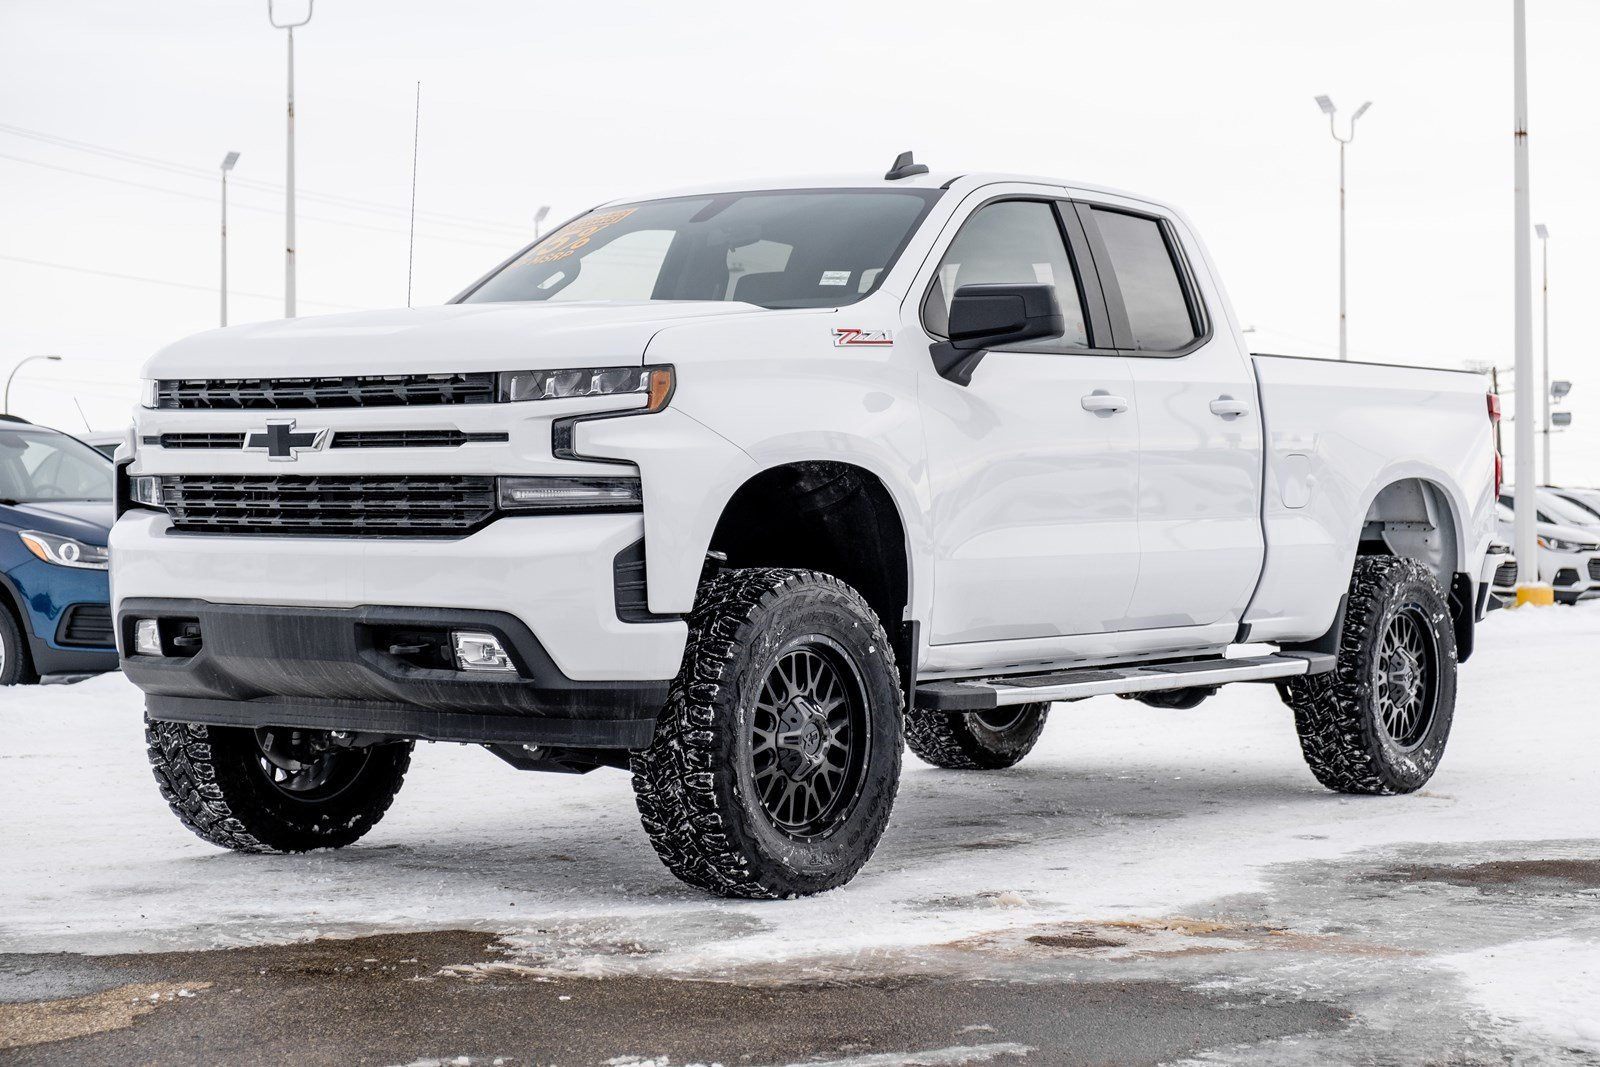 New 2019 Chevrolet Silverado 1500 RST | 6in Lift, 20in Wheels 4WD Extended Cab Pickup